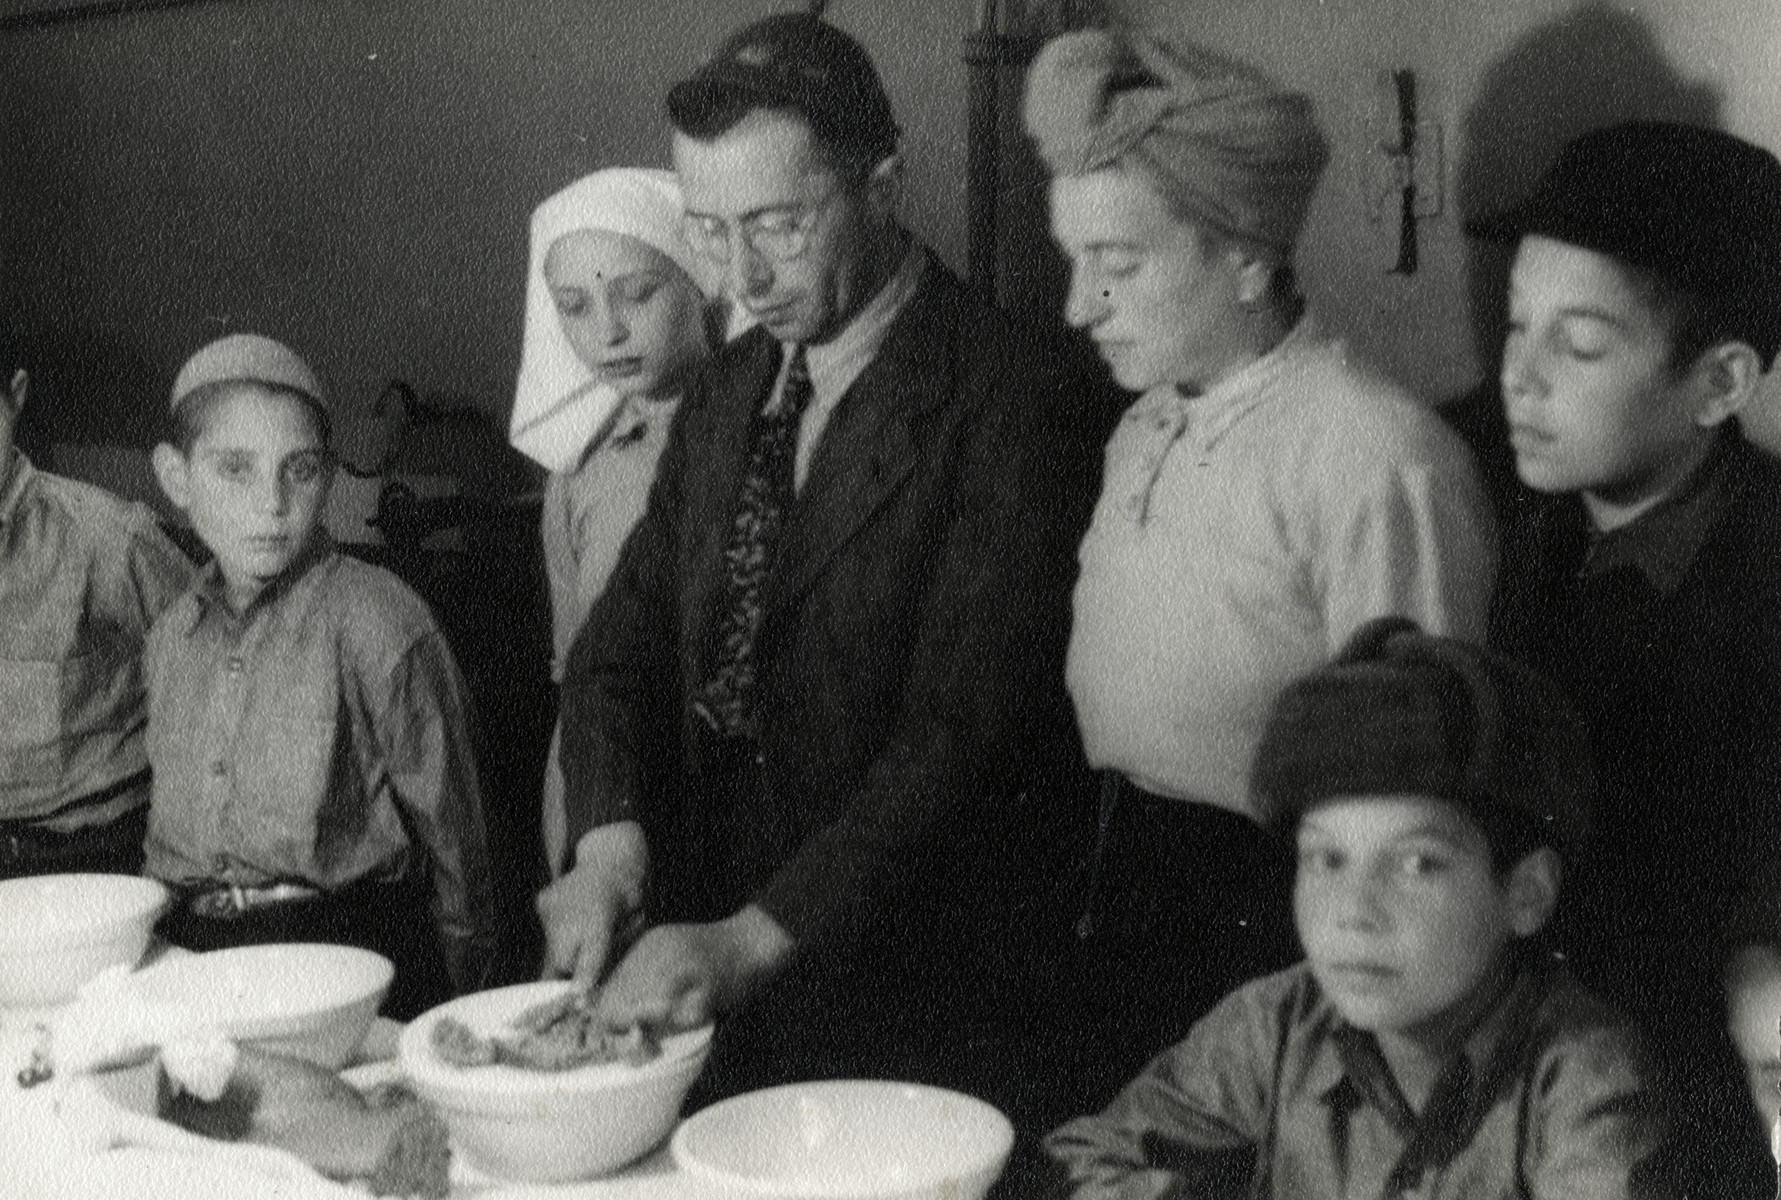 Yehoshua Birnbaum prepares a meal in a home in Maastricht where the family was staying together with the orphans under their care.  From left to right are Walter Kugler, Sonni, Yehoshua and Hennie Birnbaum and Paul Oppenheimer (in the black fur hat).